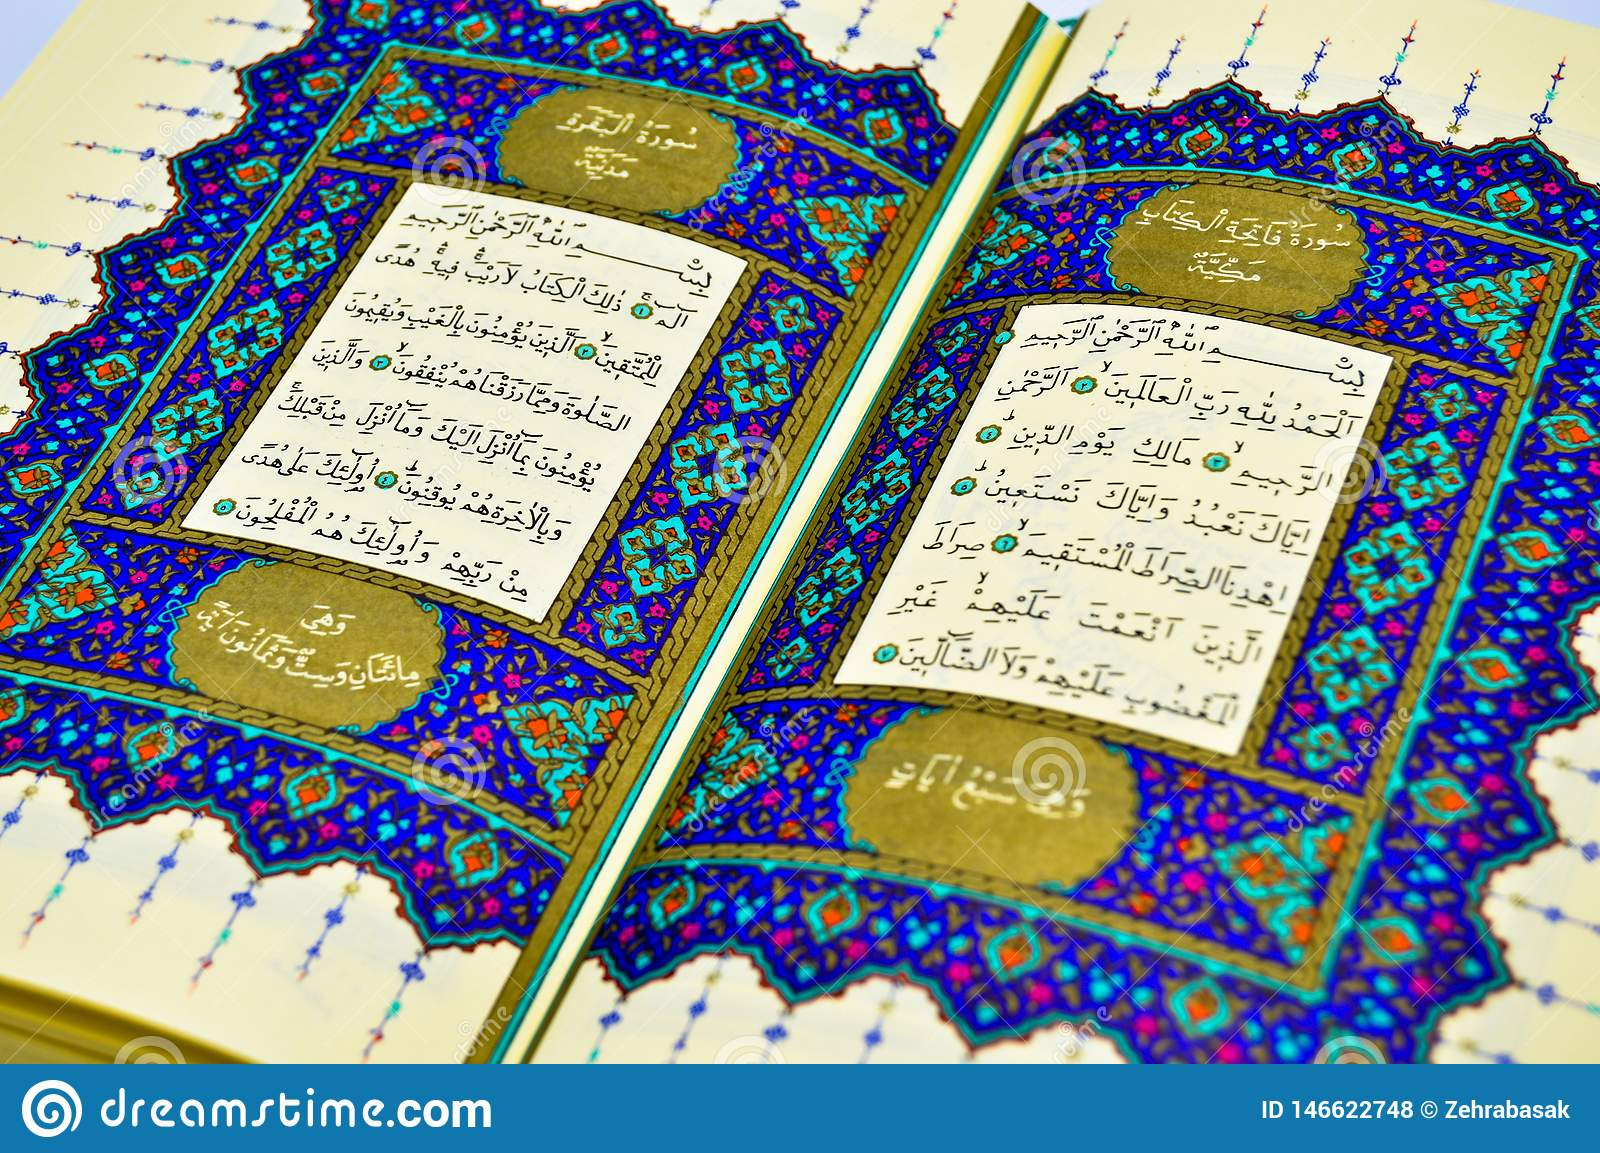 Surat Al Fatiha Some Verses From The Qur An Which Is The Holy